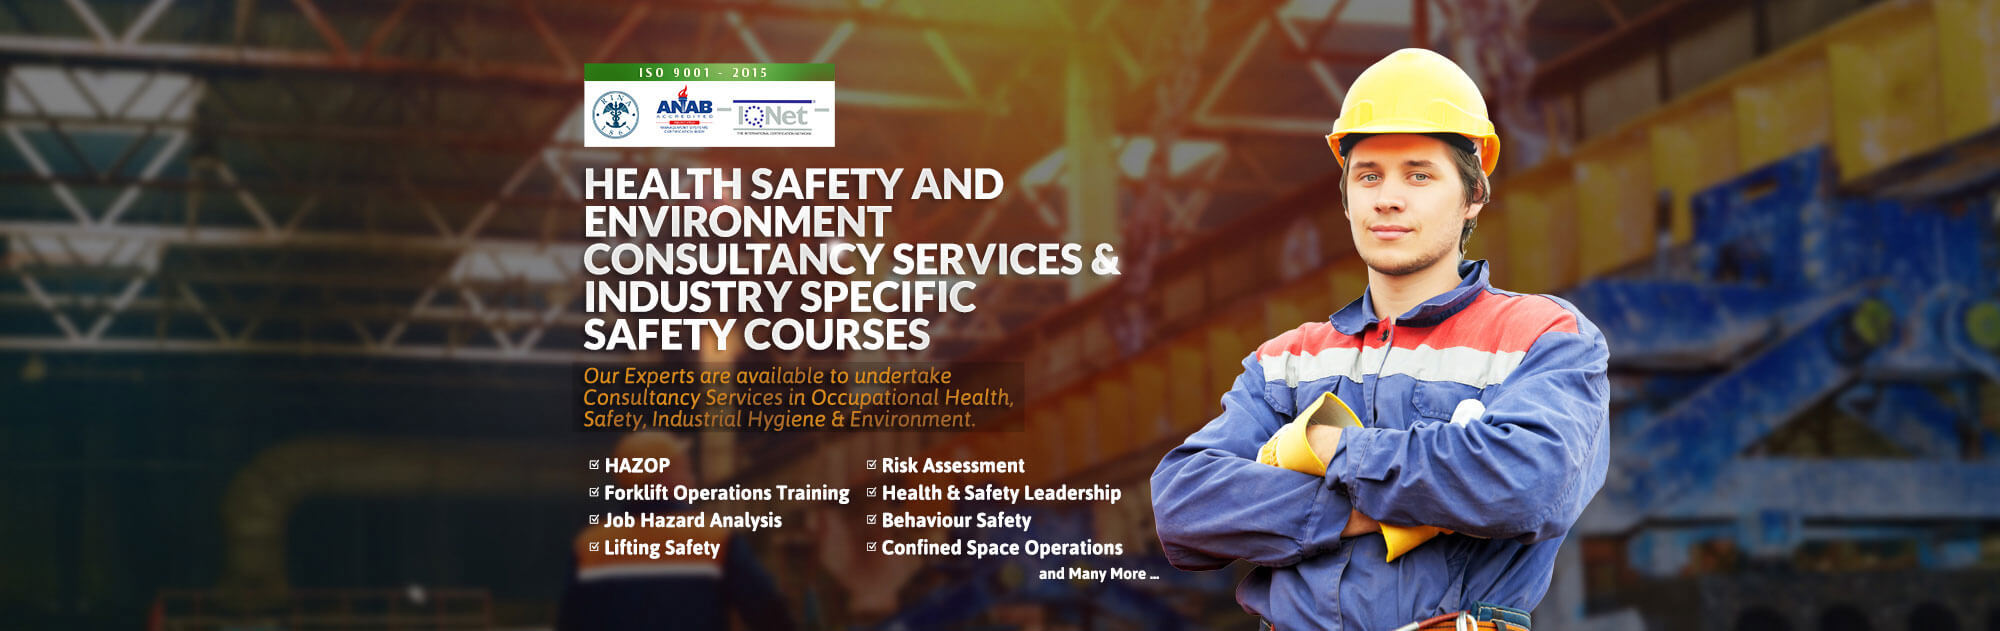 Industrial Safety Training Courses